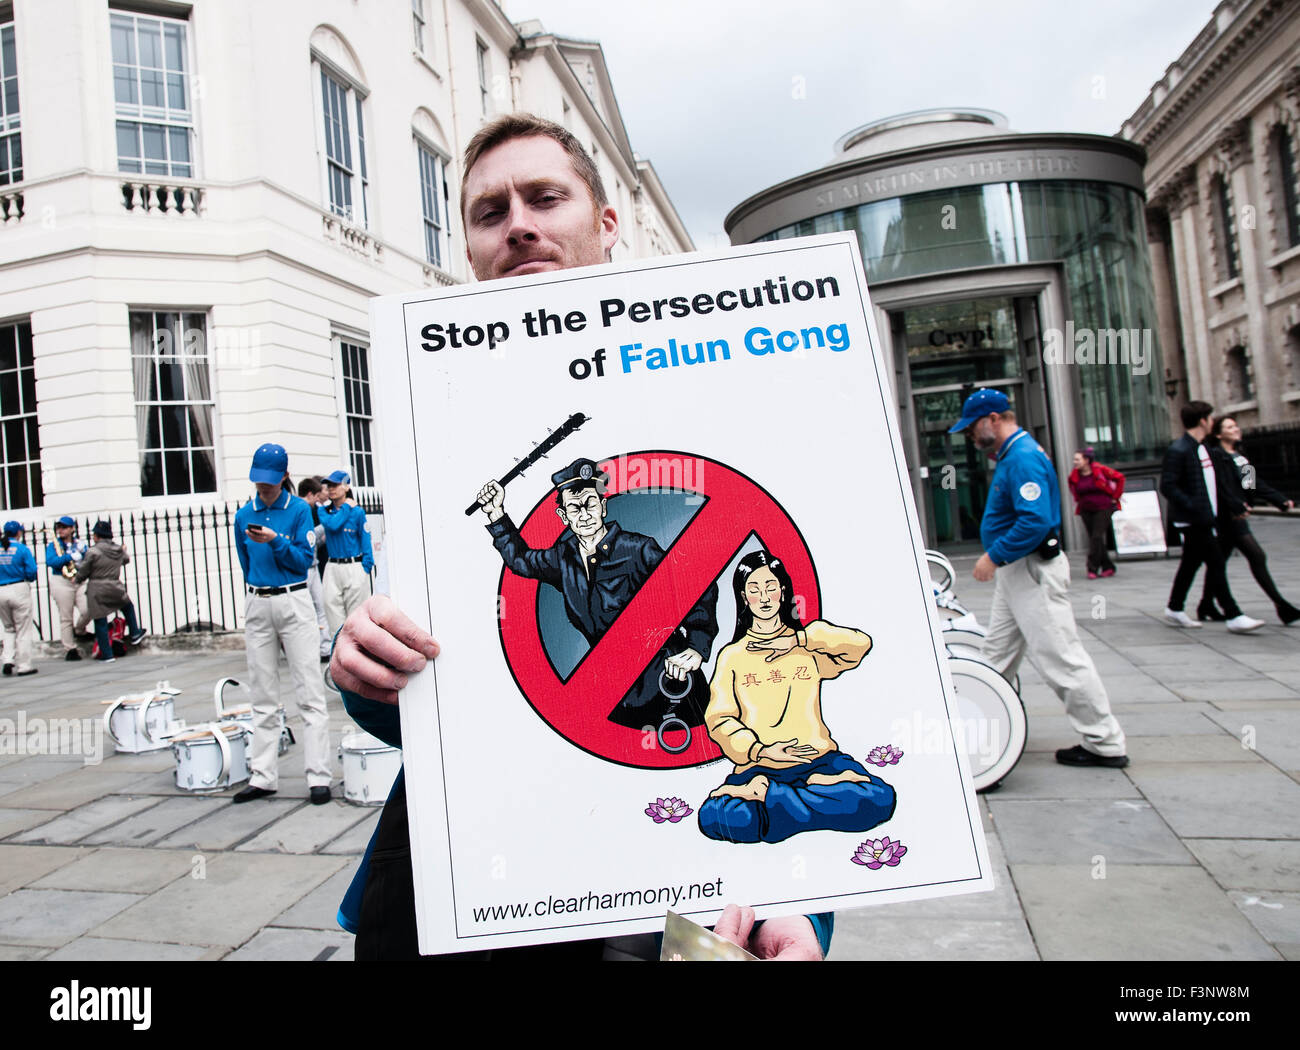 London, UK. 10th Oct, 2015. A man holding a placard demanding the end the persecution of Falun Gong at a protest - Stock Image